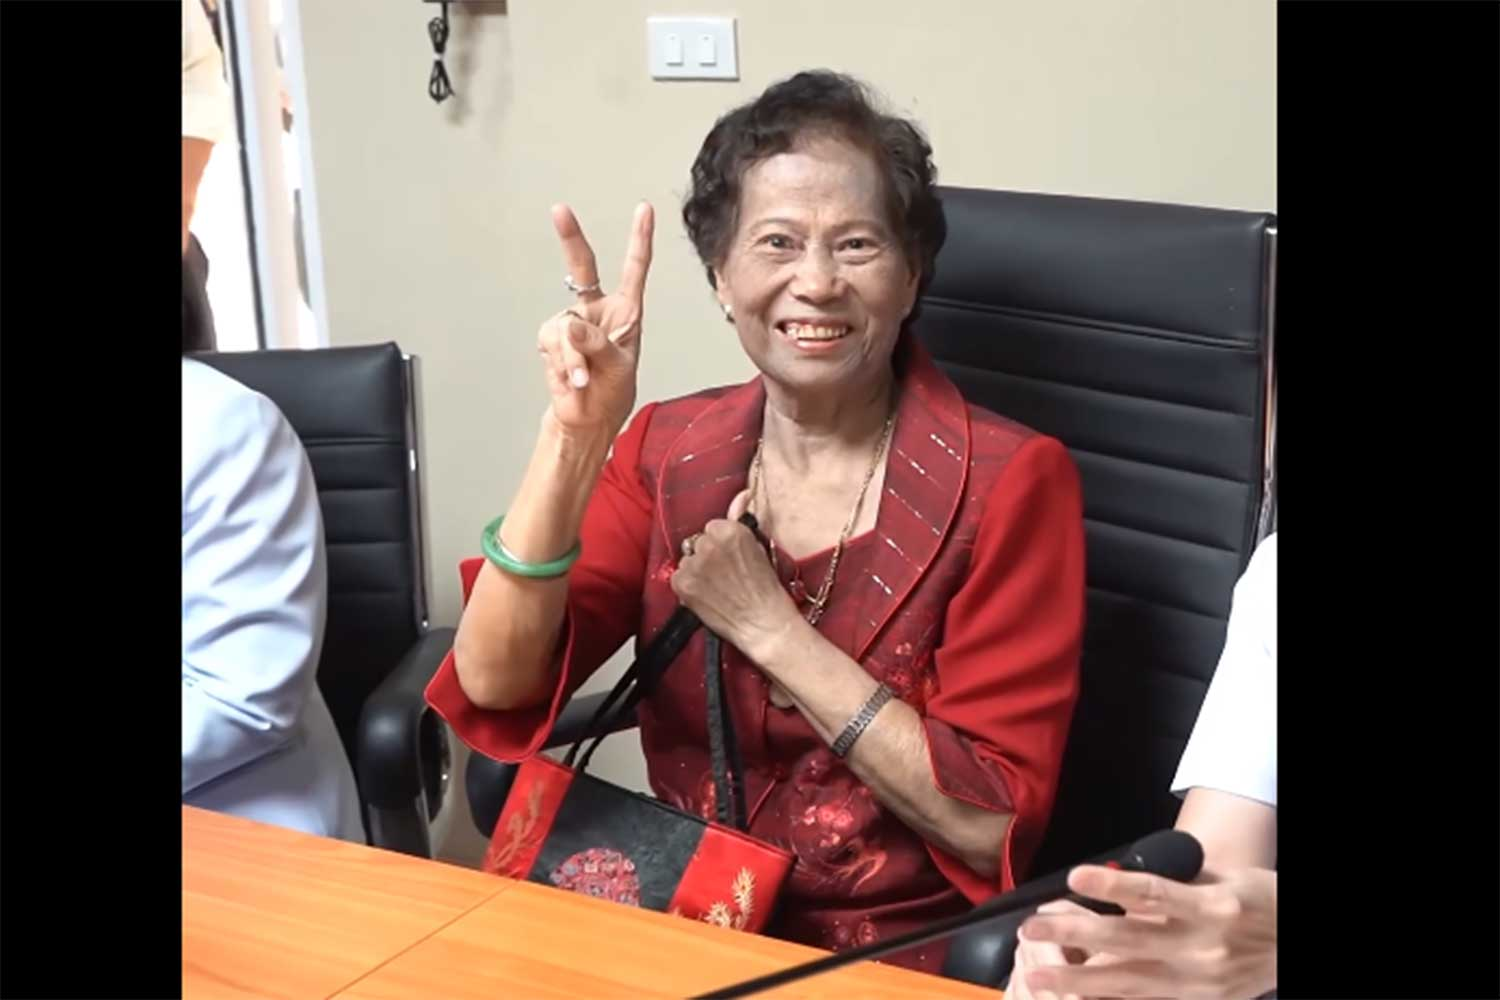 Mrs Jaimuay Sae Ung, of Nakhon Pathom, 73, the first Thai found to be infected with the new strain of coronavirus, has been treated and discharged.(Capture from a video clip posted by @onenews31 Facebook page)